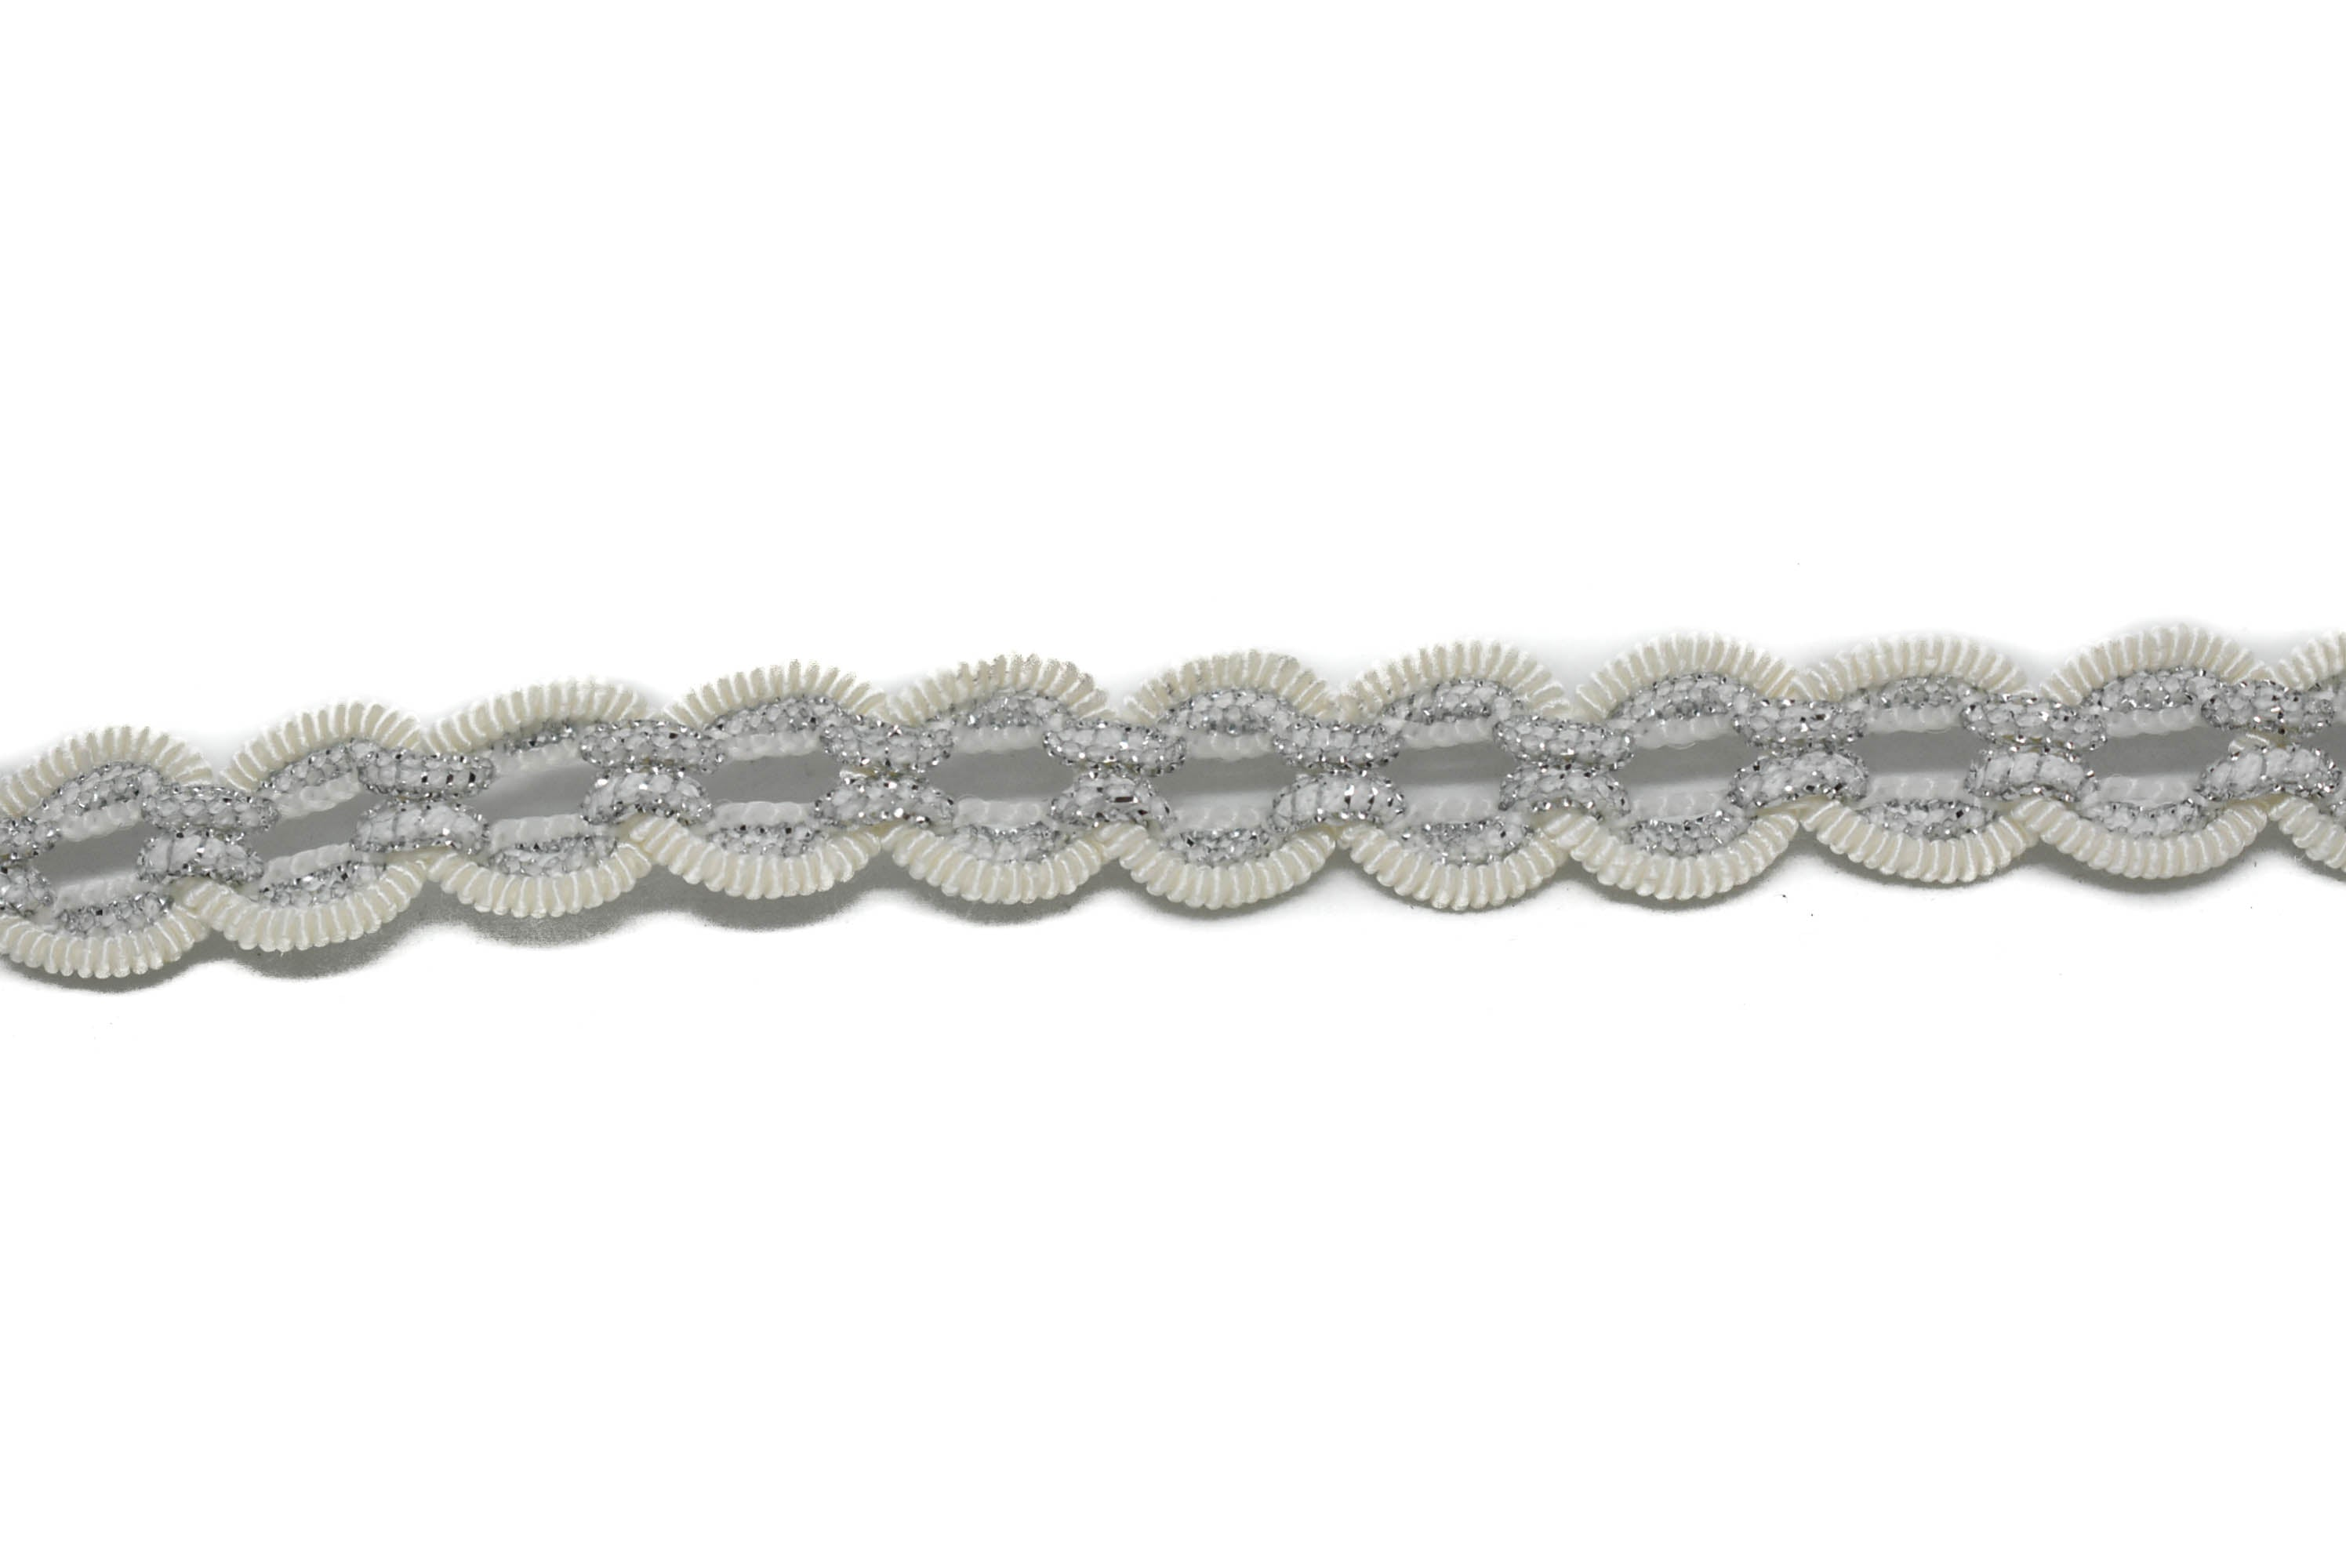 "White and Metallic Silver Gimp with Circular Ridges 1/2"" - 1 Yard"